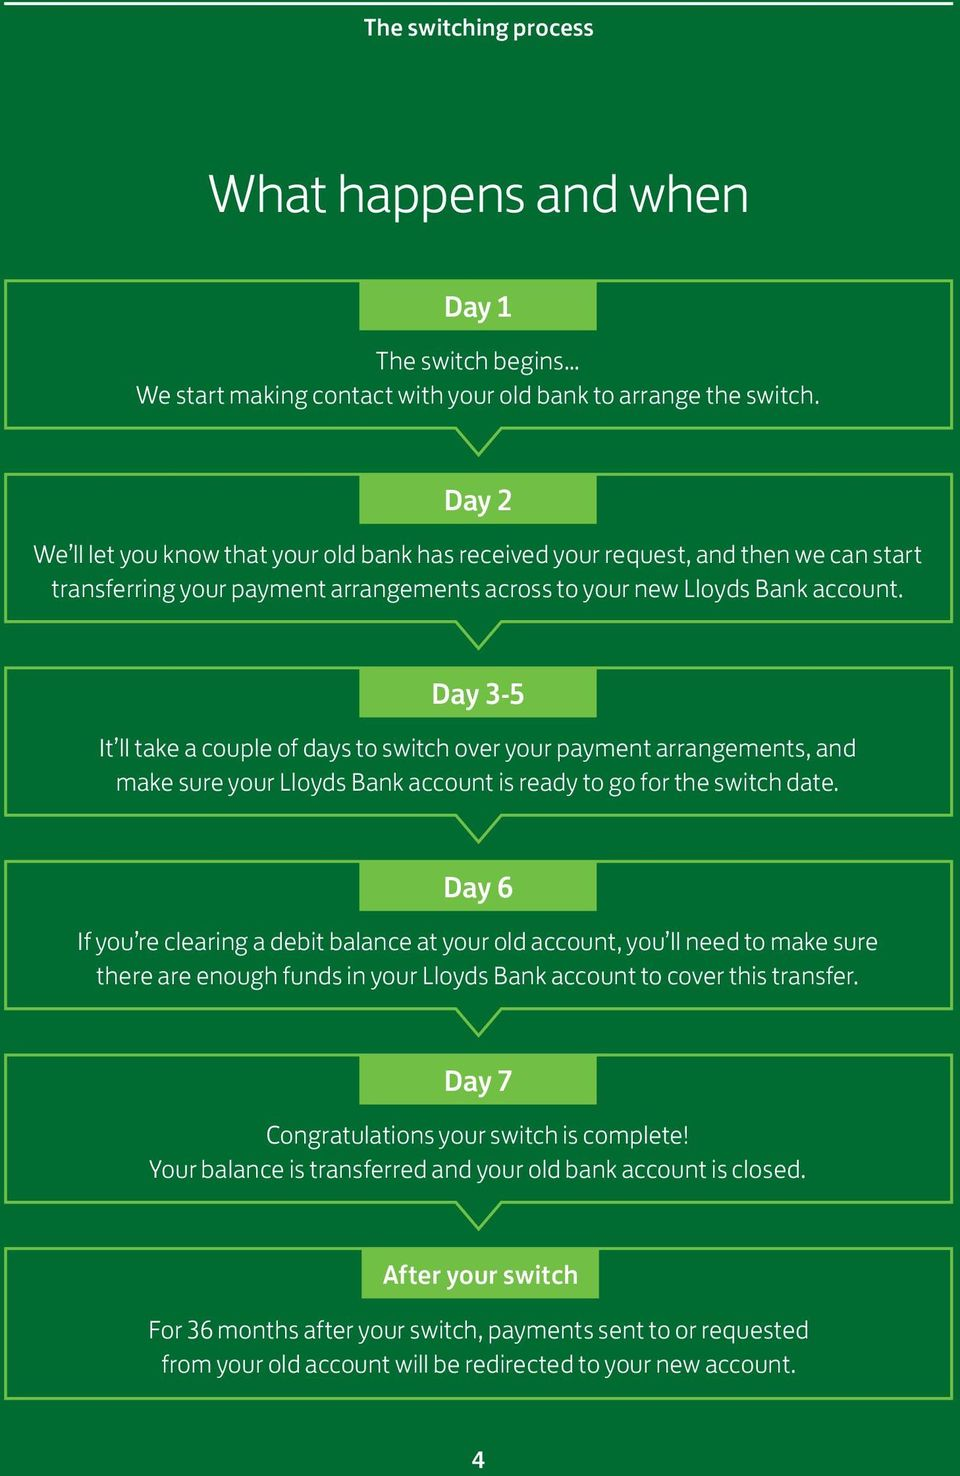 Day 3-5 It ll take a couple of days to switch over your payment arrangements, and make sure your Lloyds Bank account is ready to go for the switch date.